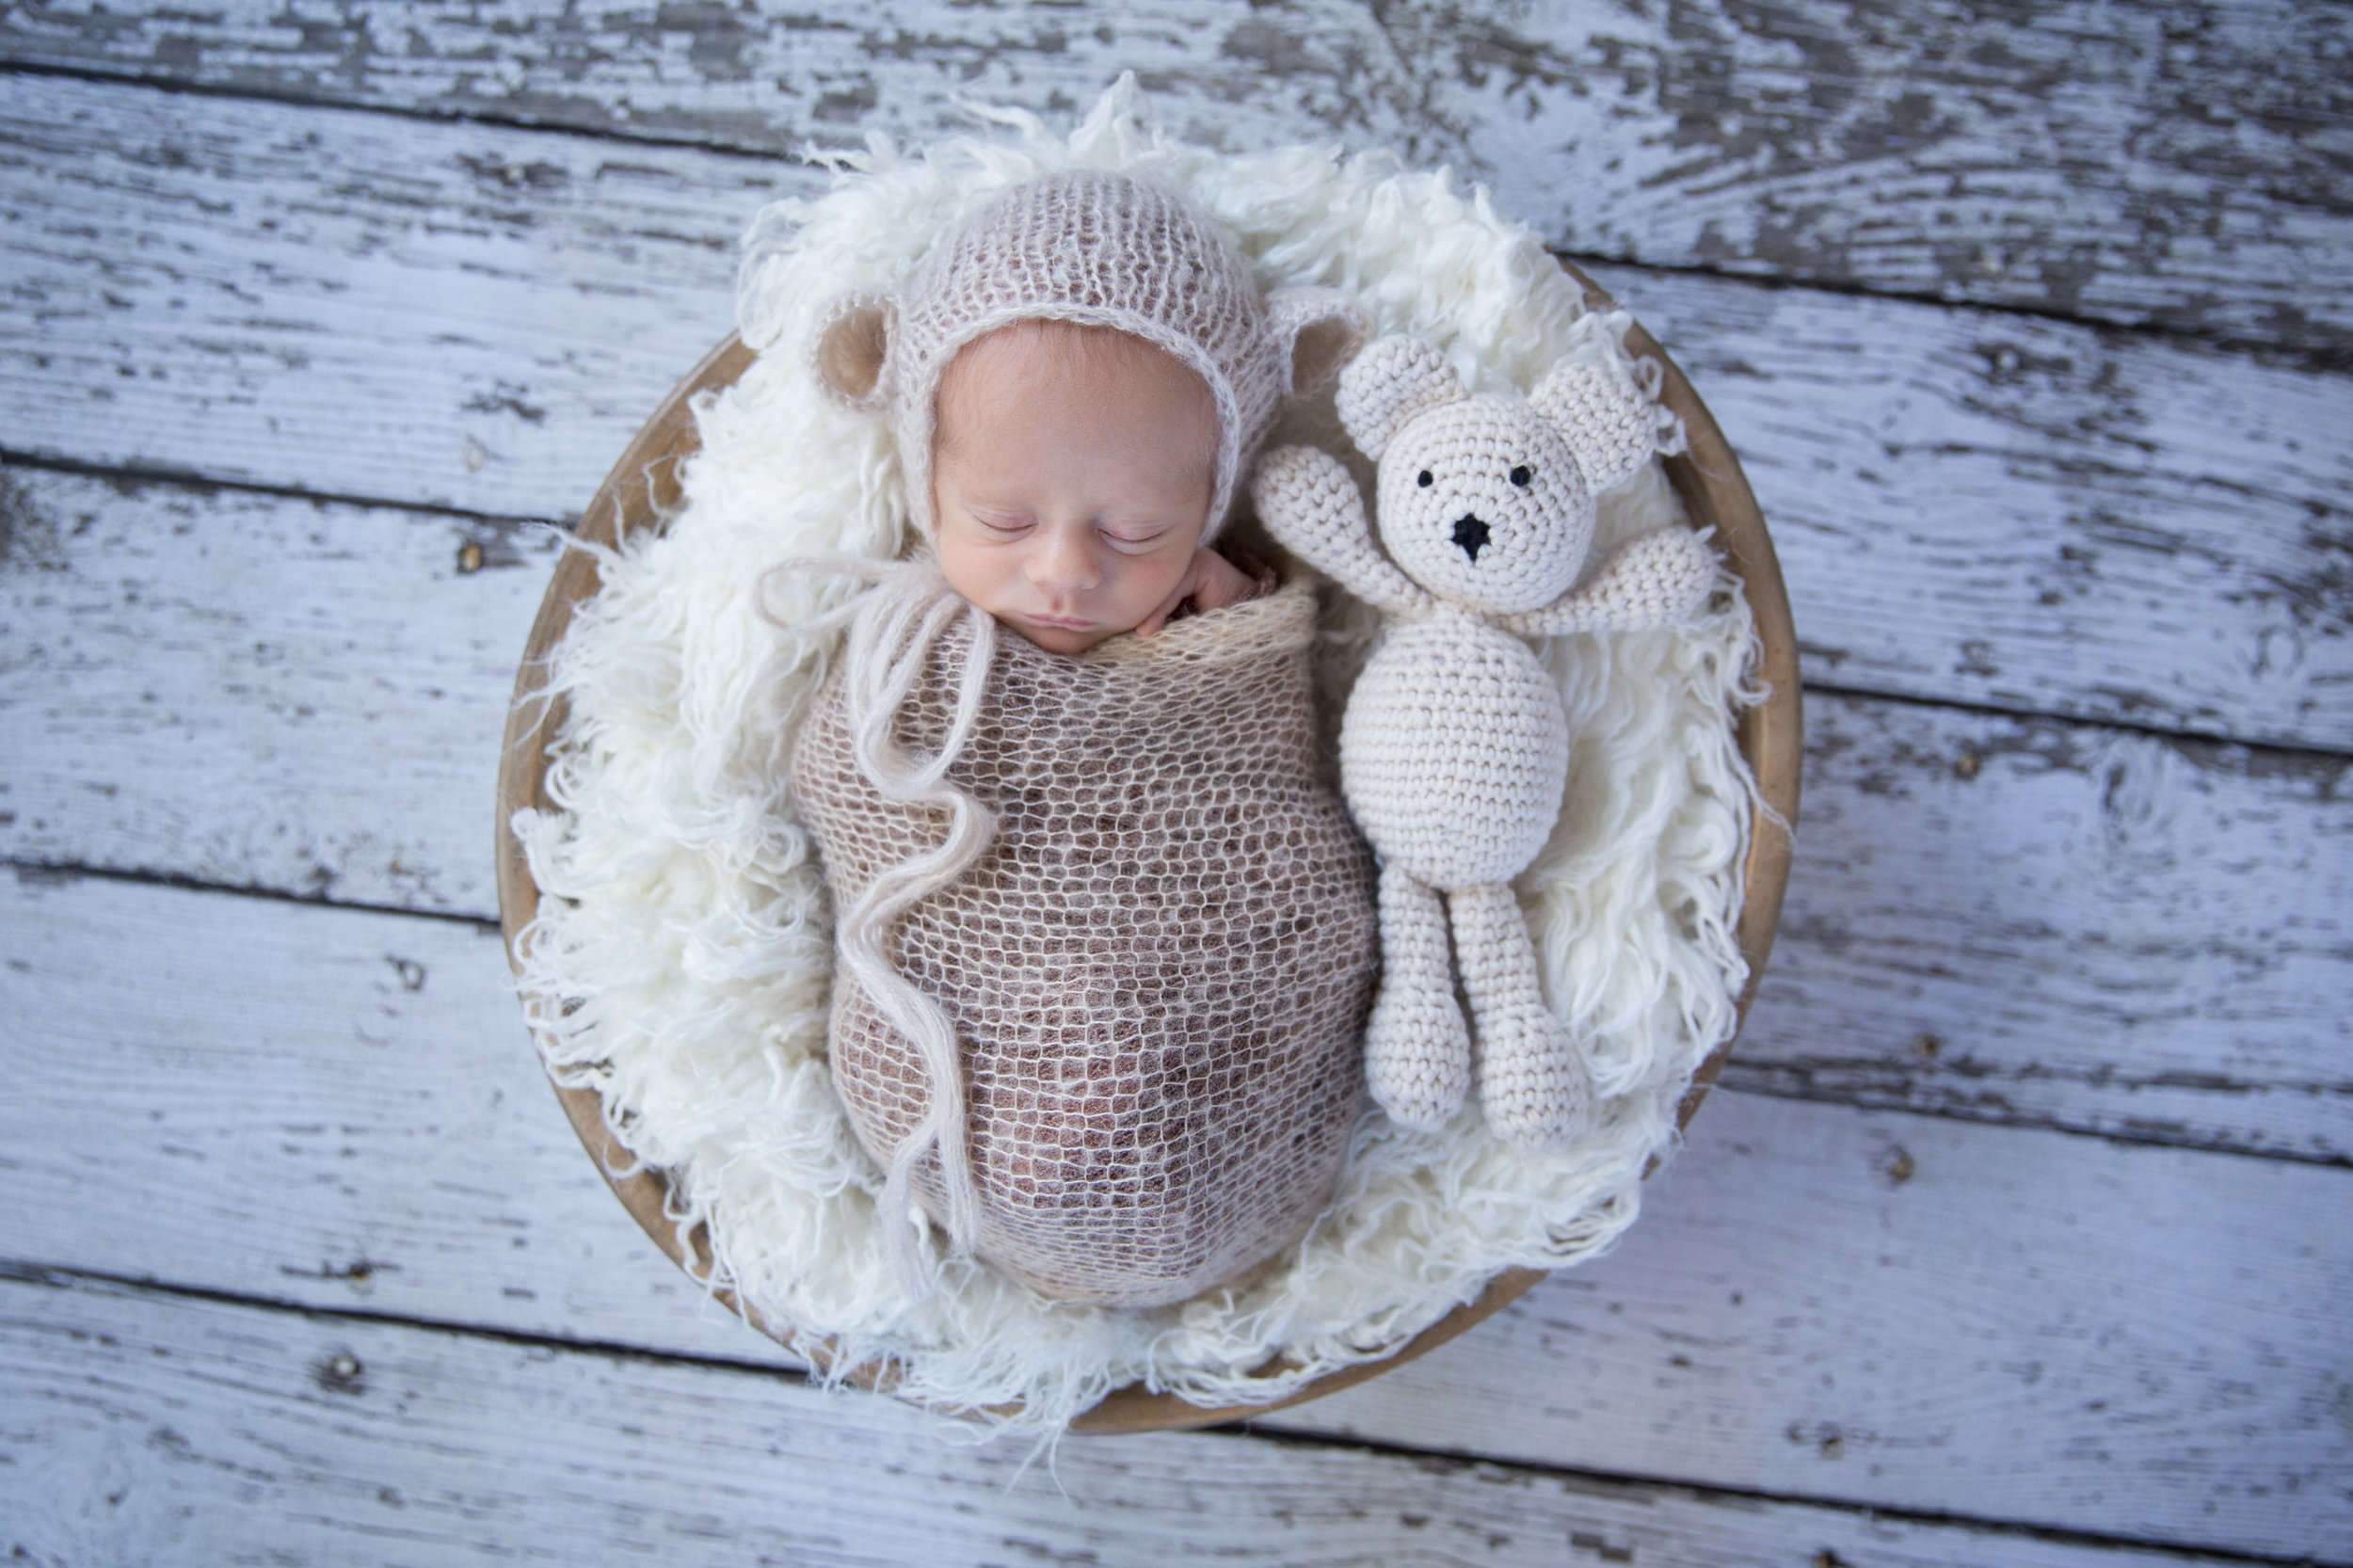 Sweet little baby boy wearing bear hat in a bowl with a little plush bear toy. Calgary Newborn Photographer.